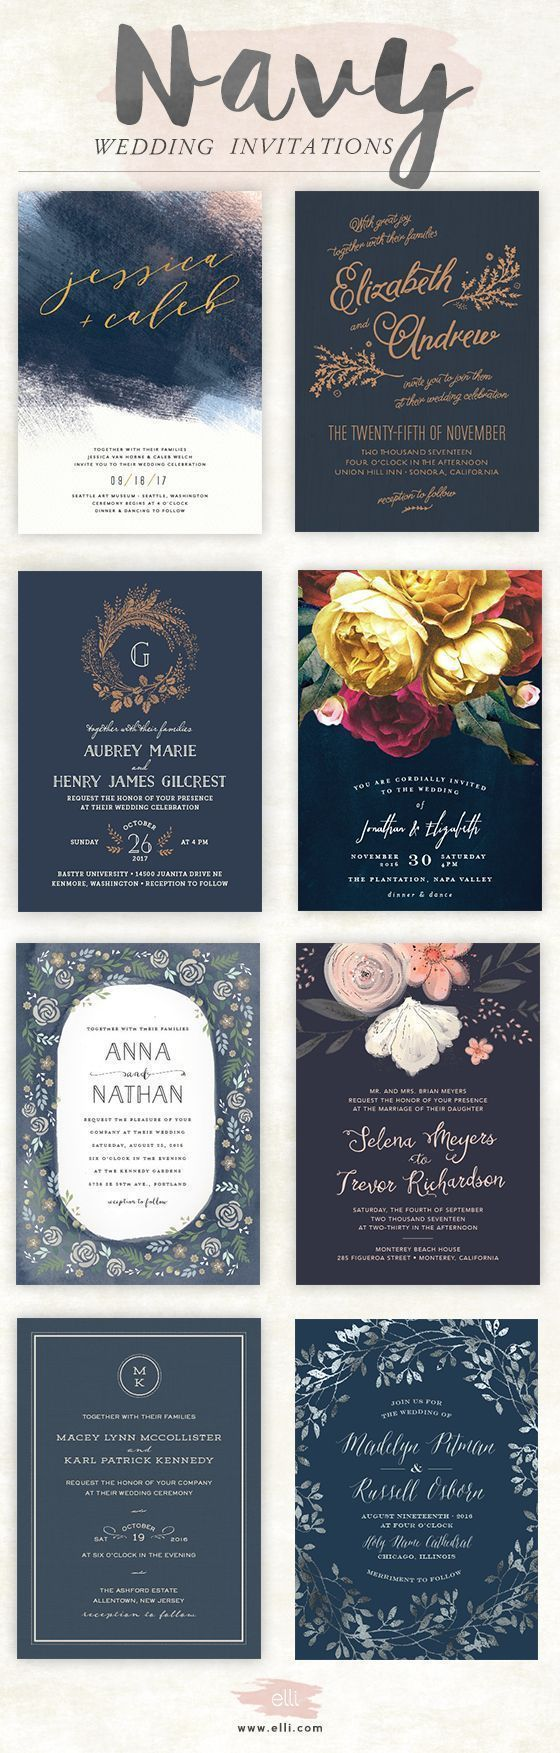 Navy wedding invitations from Elli.com. Order a free sample.